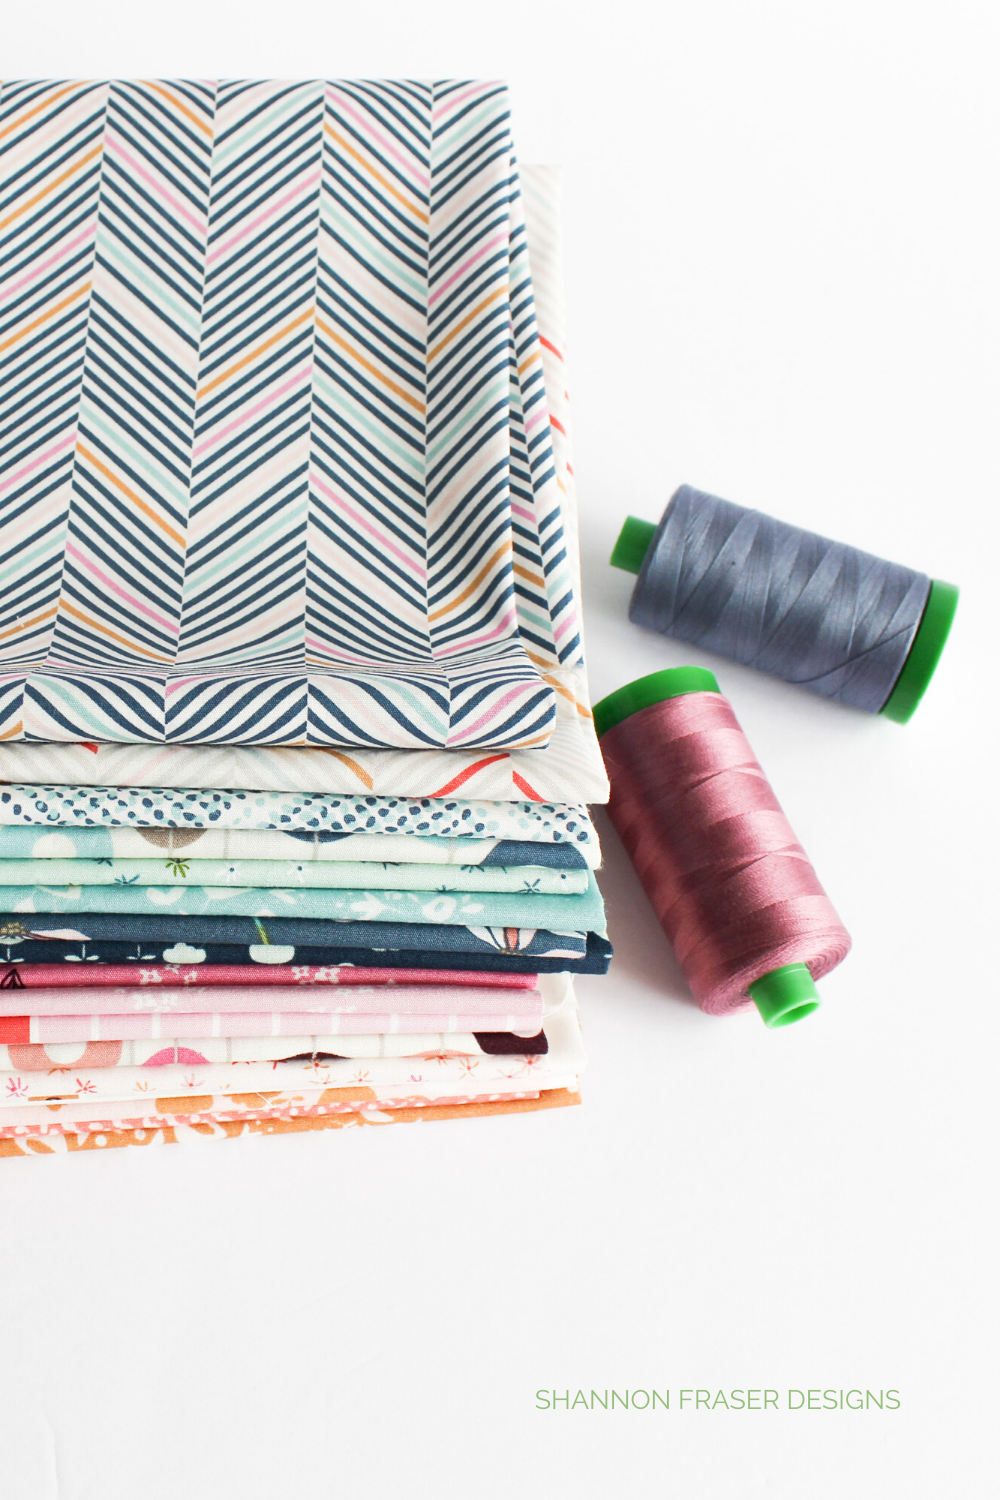 Stack of Playground Fat Quarters + 2 spools or Aurifil thread in 40wt | Playtime Quilt | Shannon Fraser Designs #fabric